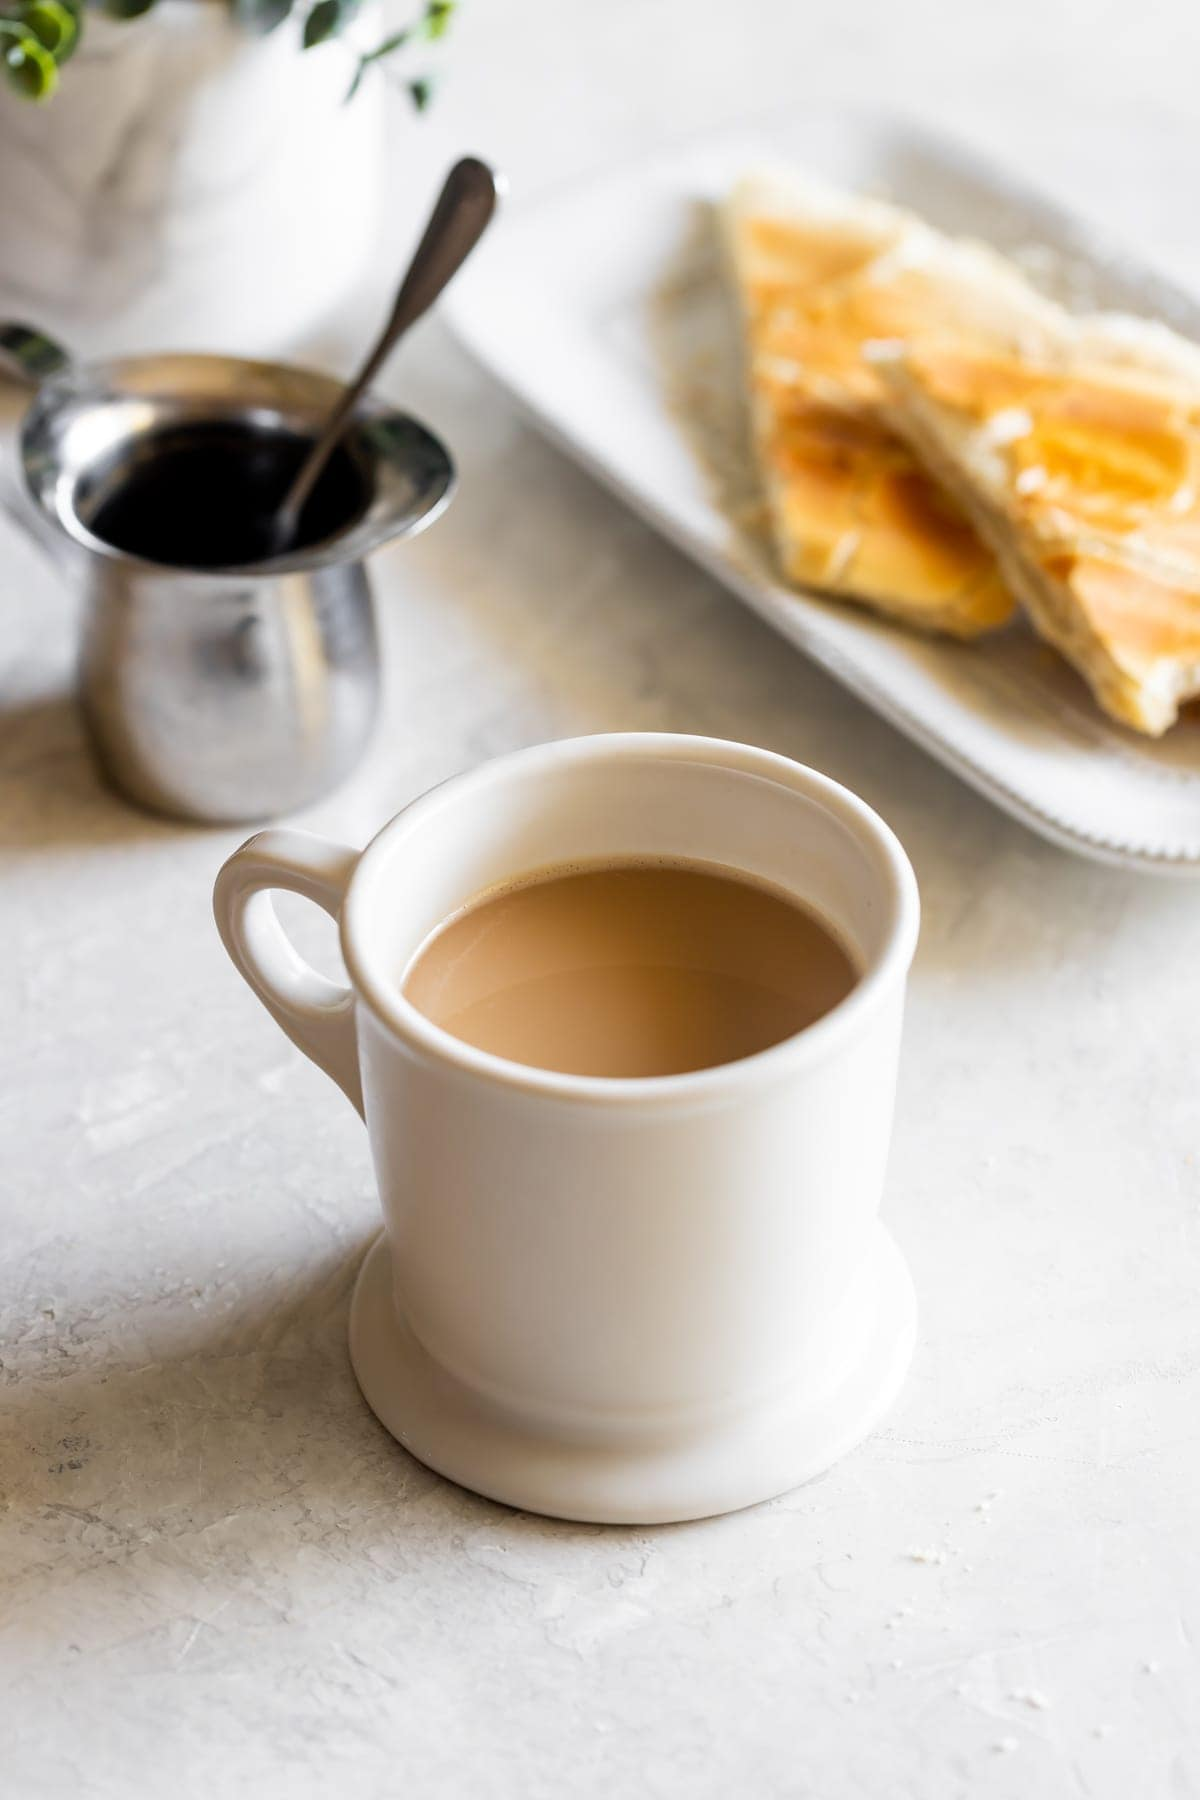 cup of cuban coffee with milk next to espresso cup and cuban toast